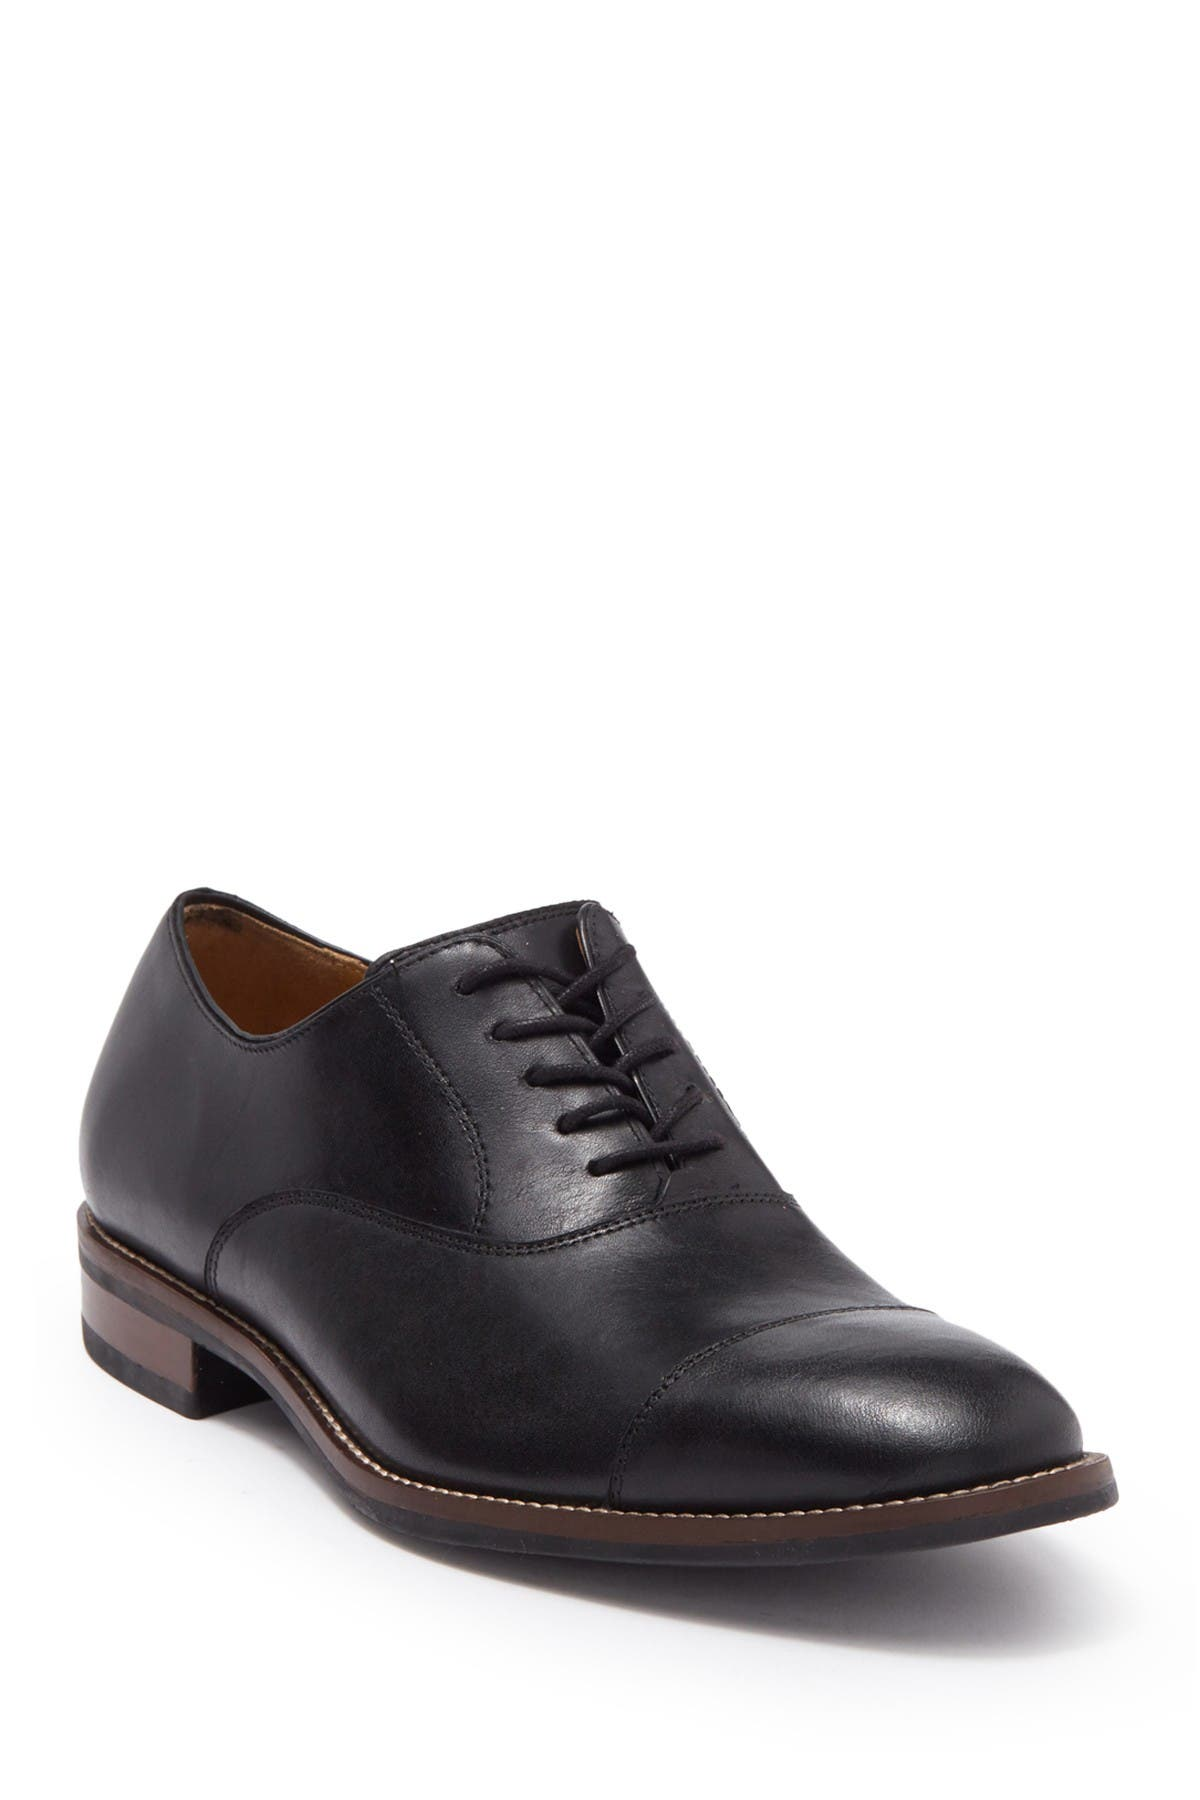 Image of Cole Haan Lenox Hill Leather Cap Toe Oxford